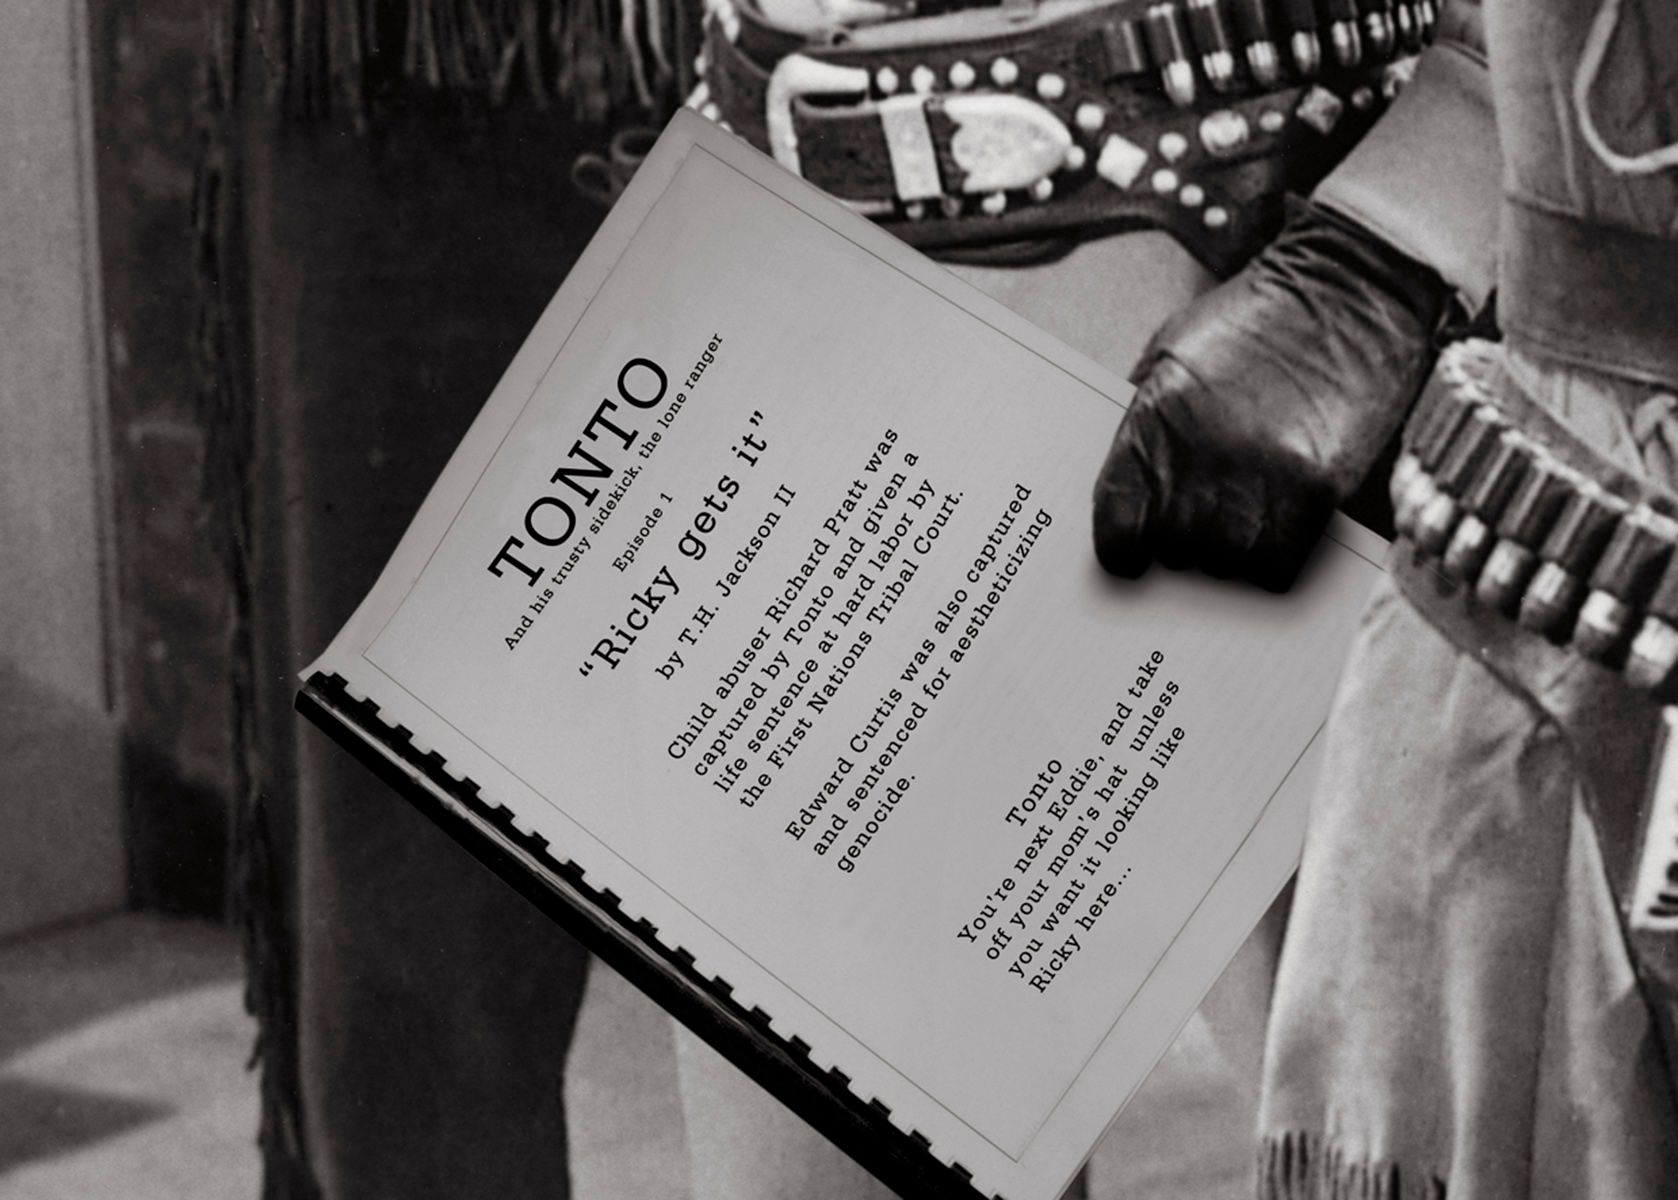 TONTO'S TV SCRIPT REVISION, digital print detail